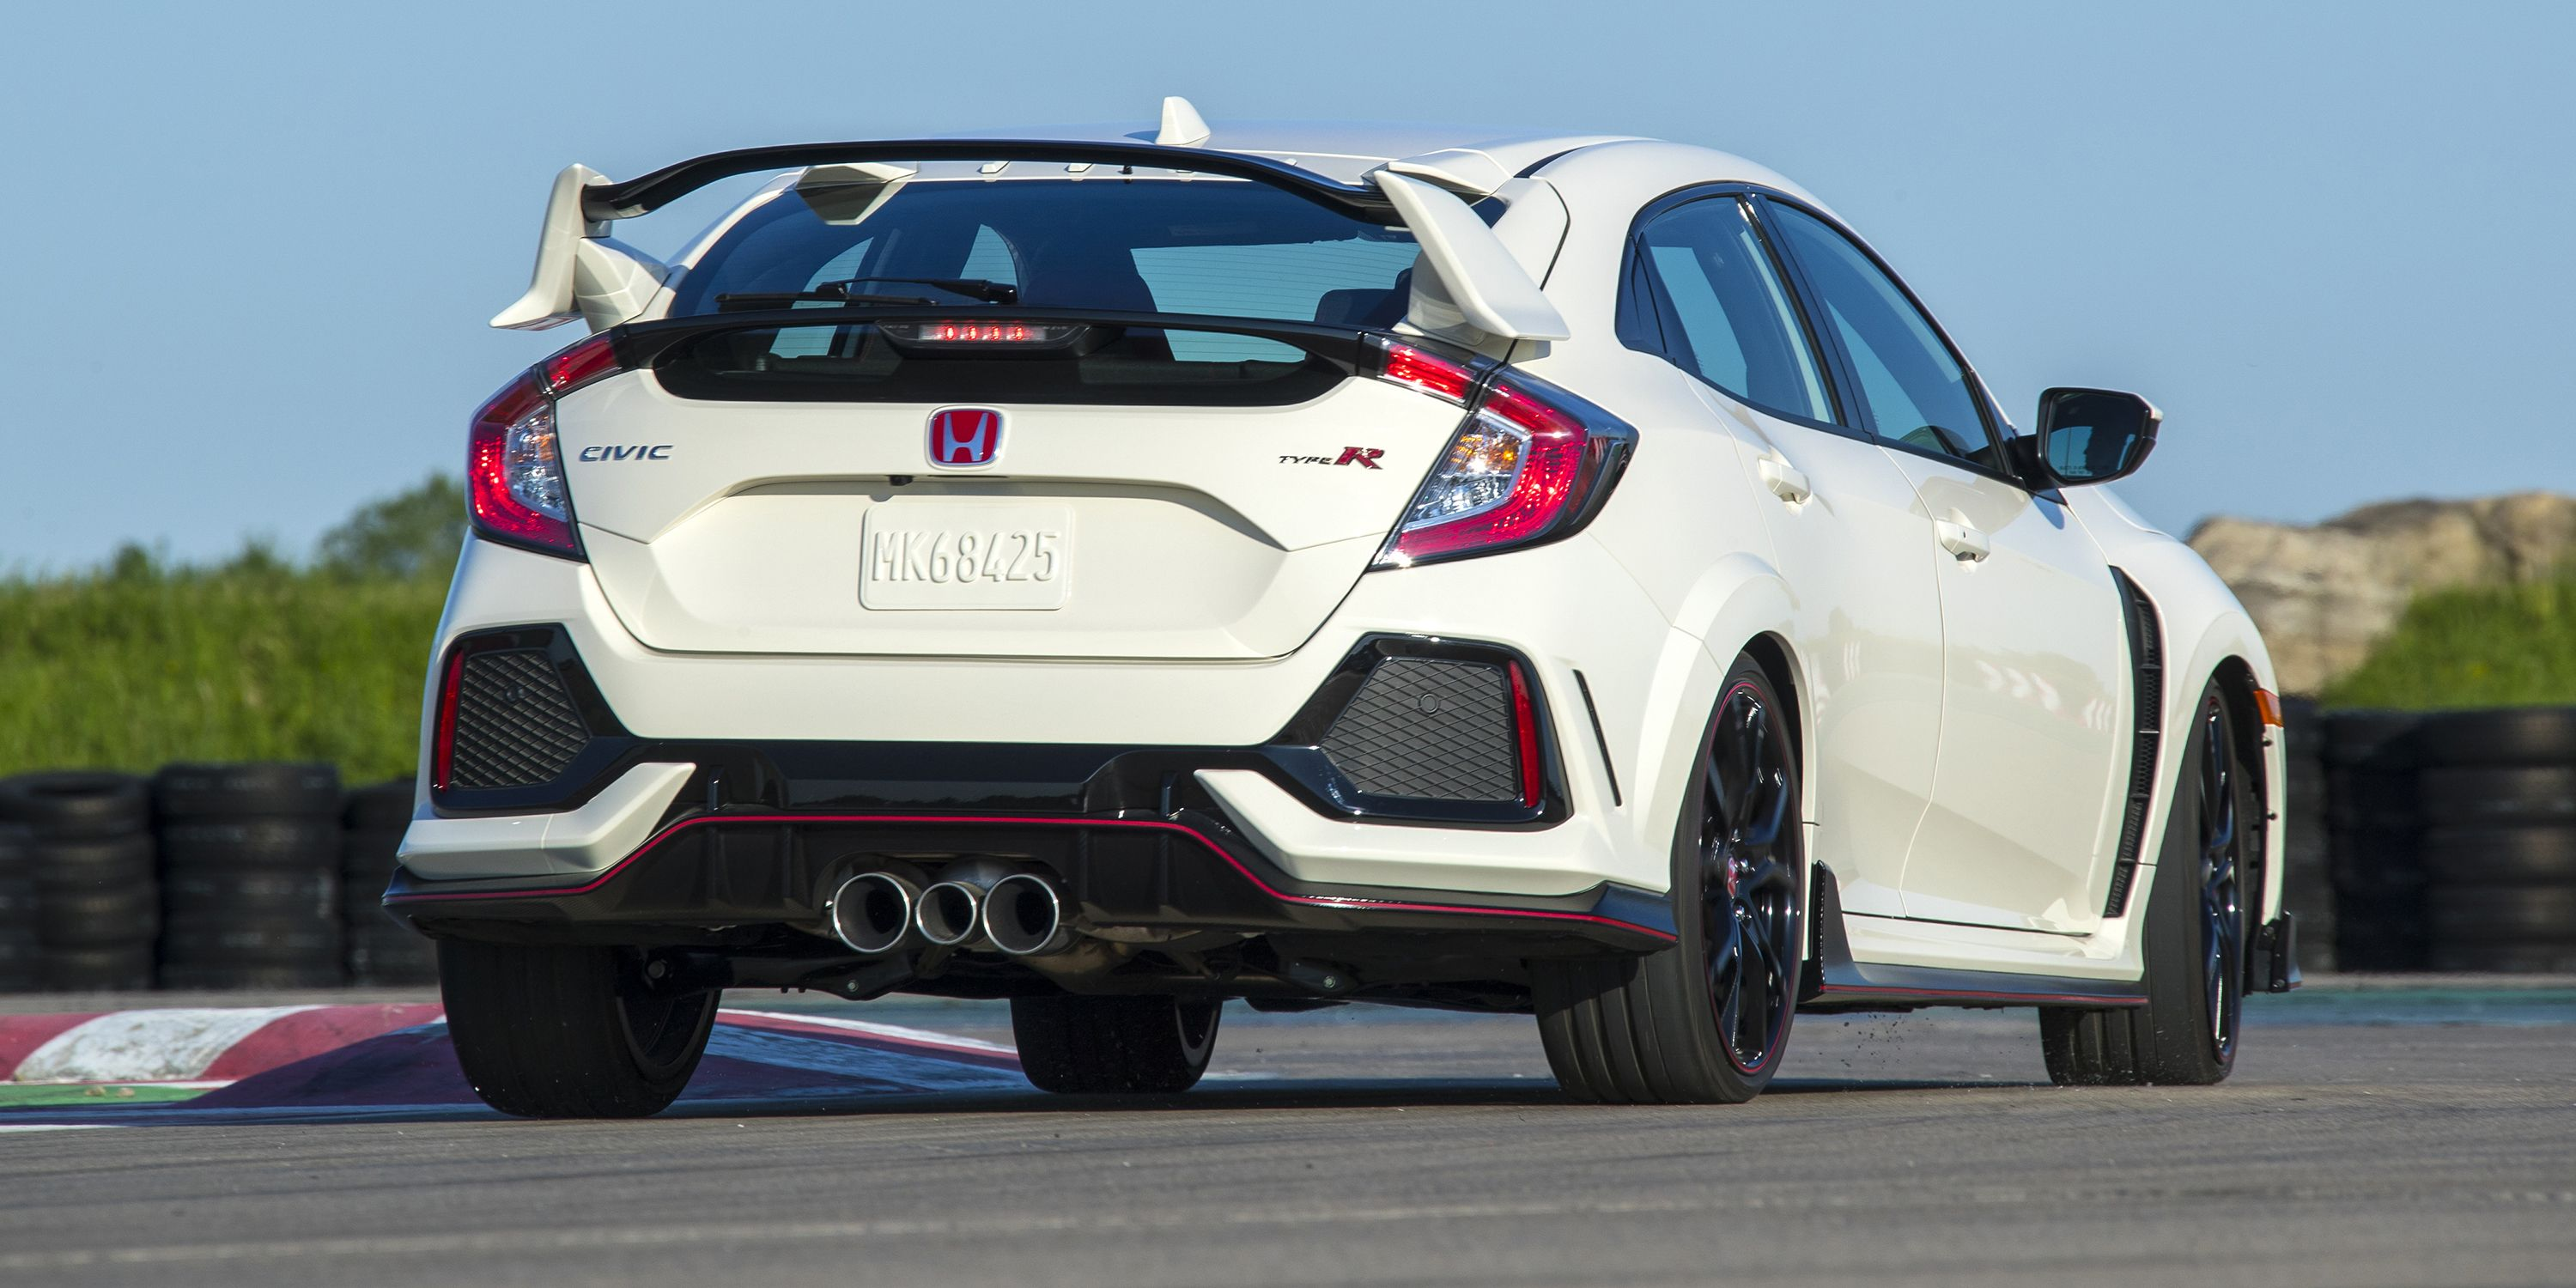 Civic Type R Middle Exhaust - Why the Civic Type R Has Three